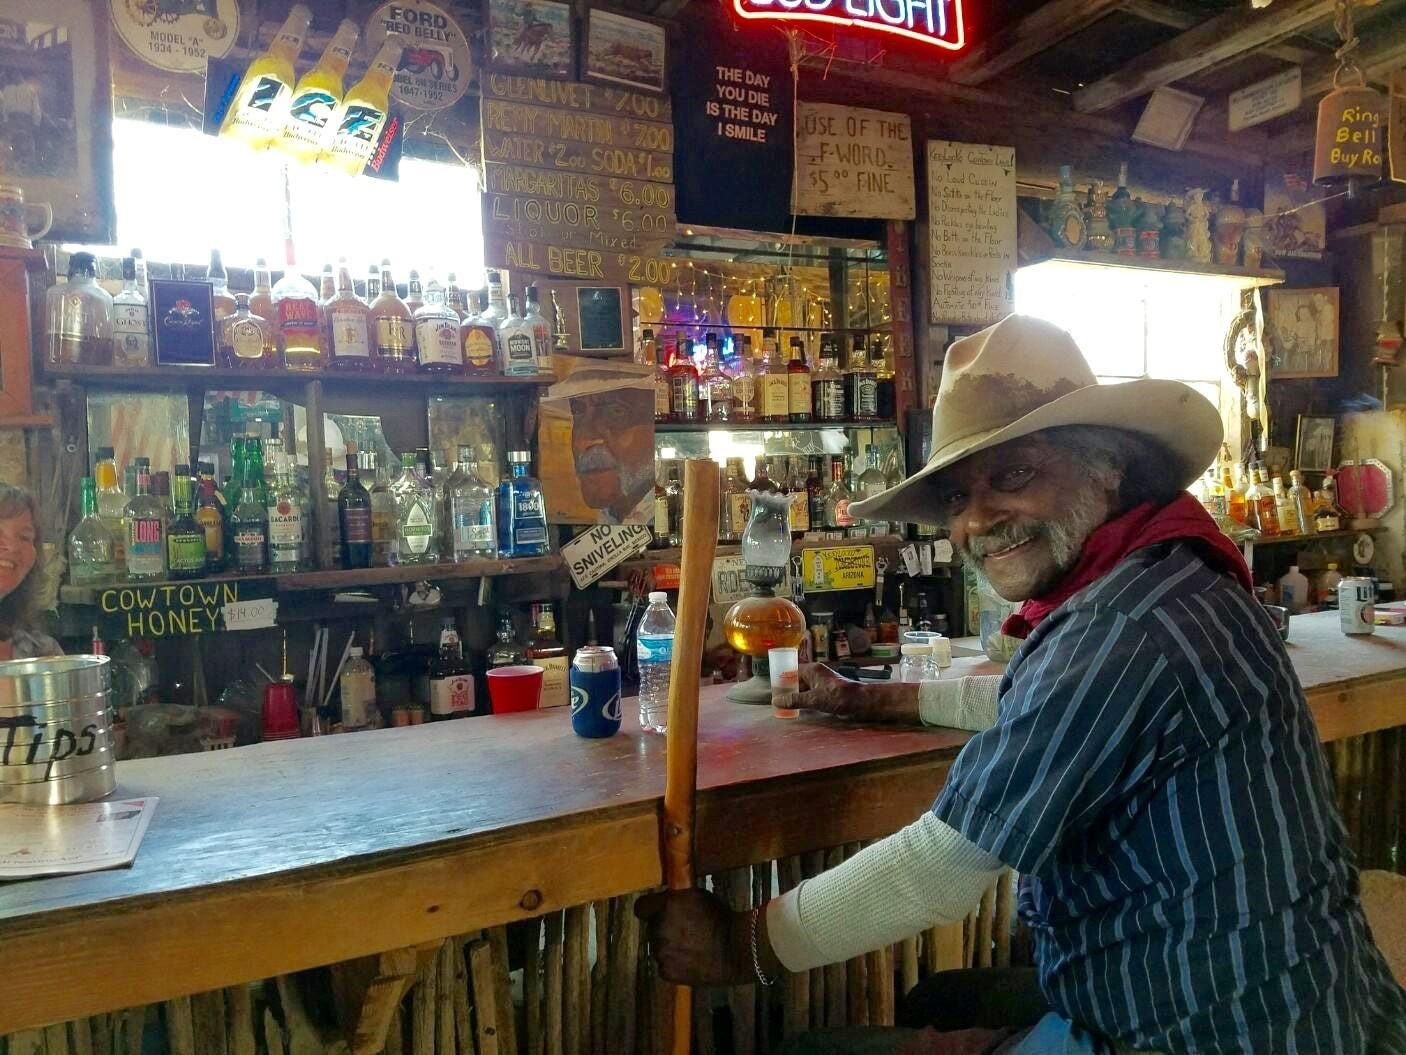 Ed Keeylocko at the bar of the Blue Dog Saloon.